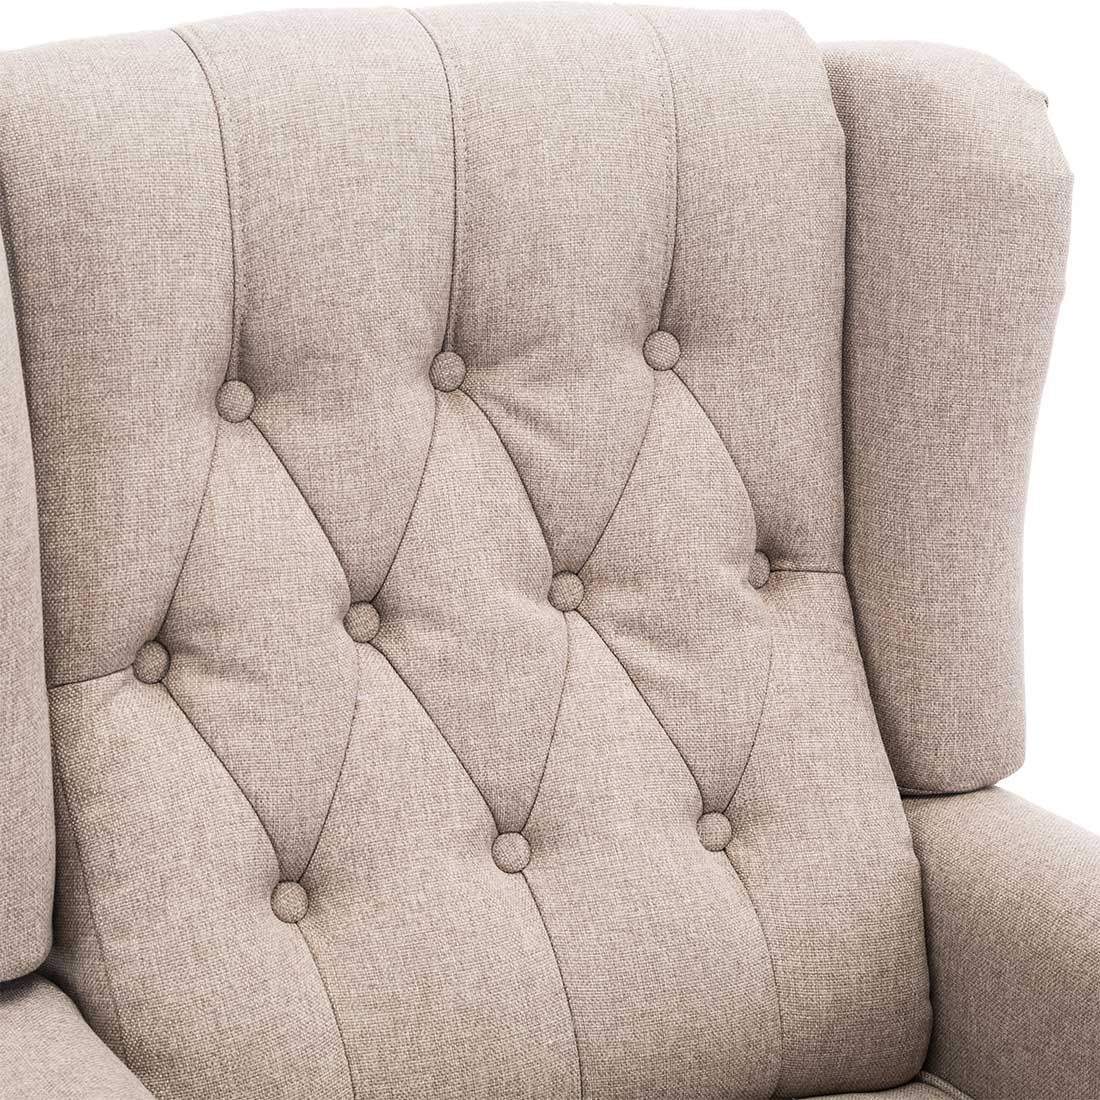 ALTHORPE-WING-BACK-RECLINER-CHAIR-FABRIC-BUTTON-FIRESIDE-OCCASIONAL-ARMCHAIR